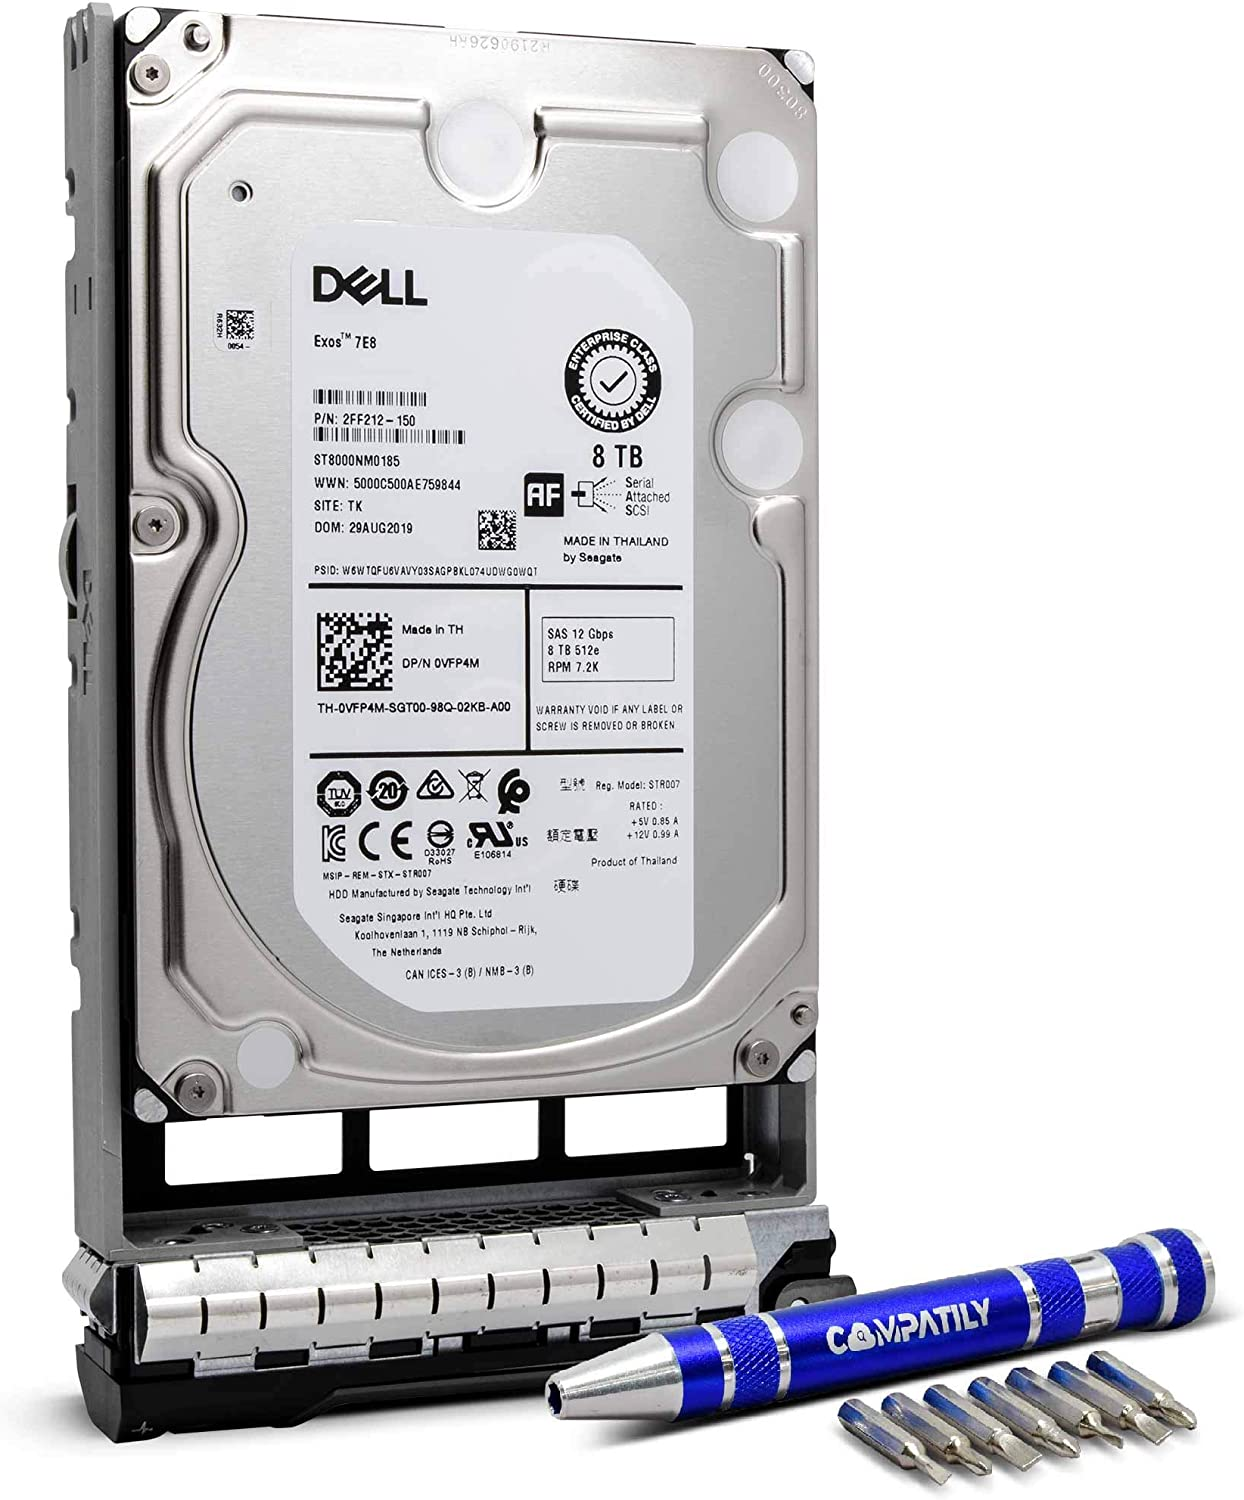 "Dell 400-AMPG 8TB 7.2K SAS 3.5"" HDD PowerEdge Enterprise Hard Drive in 13G Tray Bundle with Compatily Screwdriver Compatible with GKWHP 400-AMPD R430 R730 T330 R330 R530 Hardware Parts and Servers"